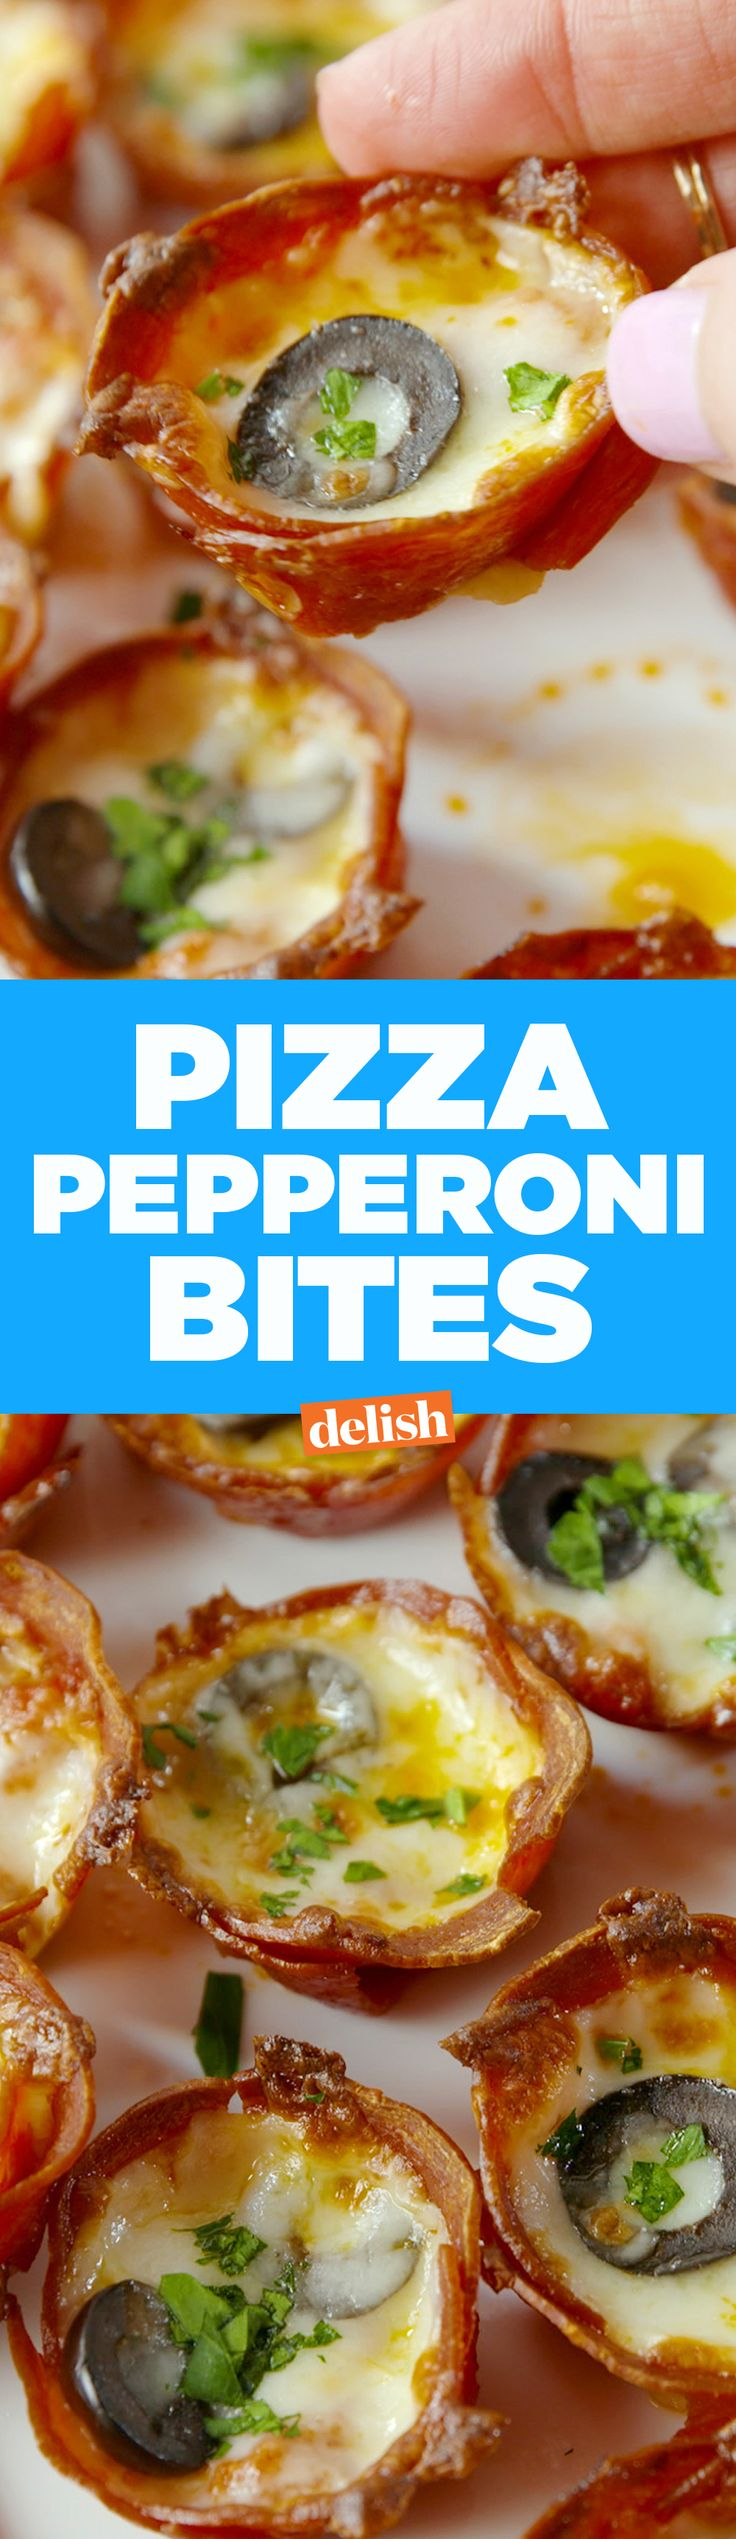 Pizza Pepperoni Bites are the low-carb snack you'll actually look forward to eating. Get the recipe on Delish.com.